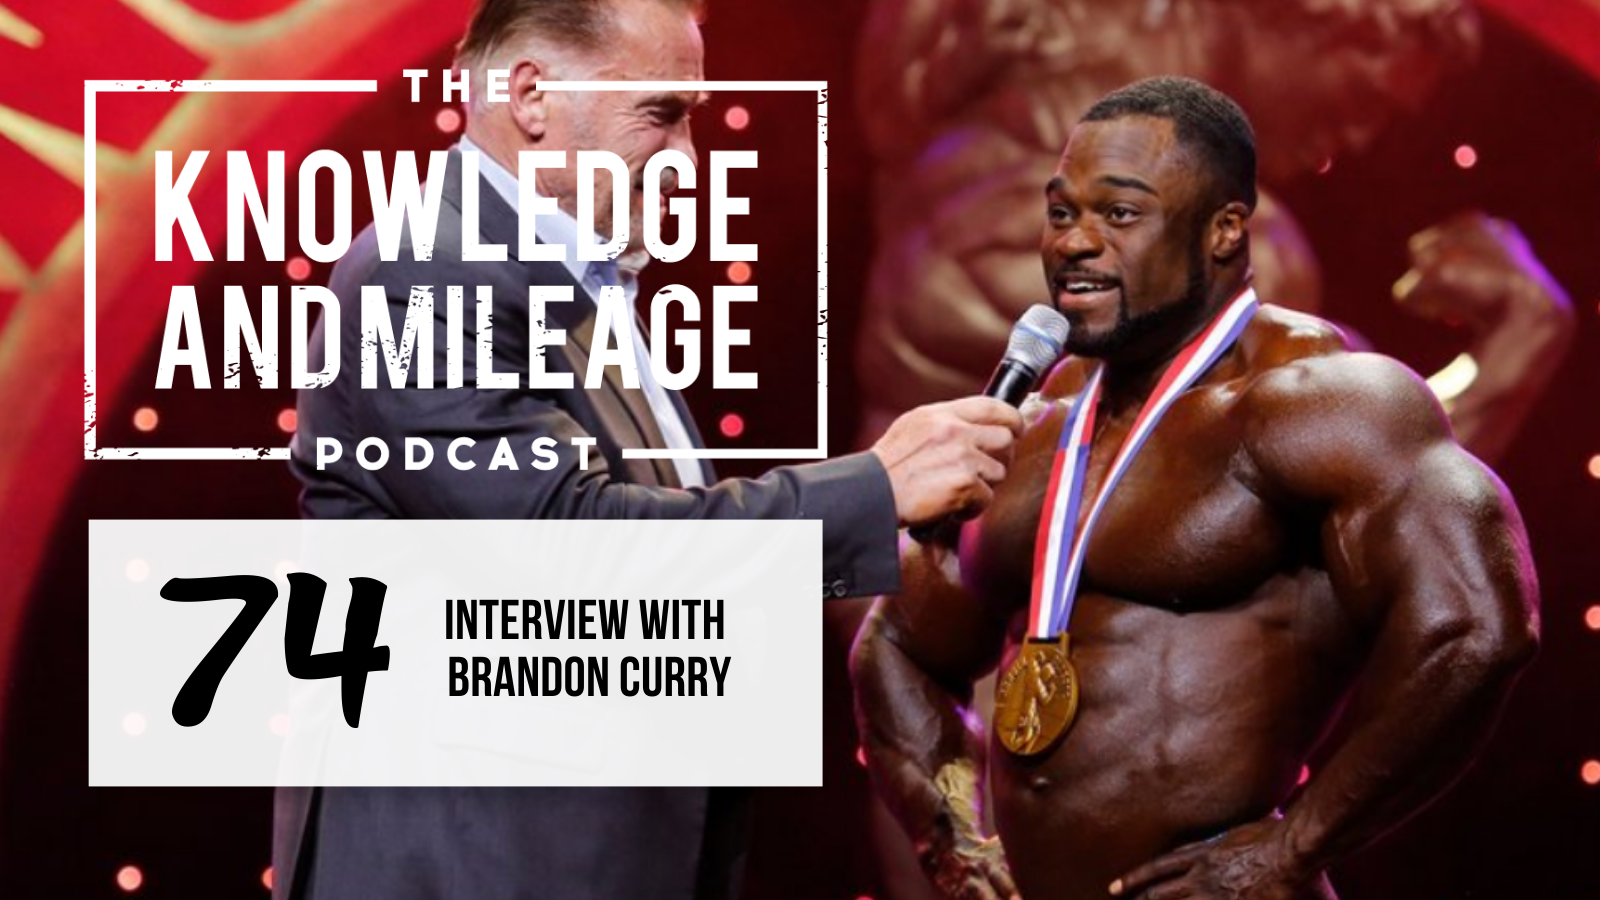 EP 74: The Road to Becoming Mr. Olympia: Interview with Brandon Curry